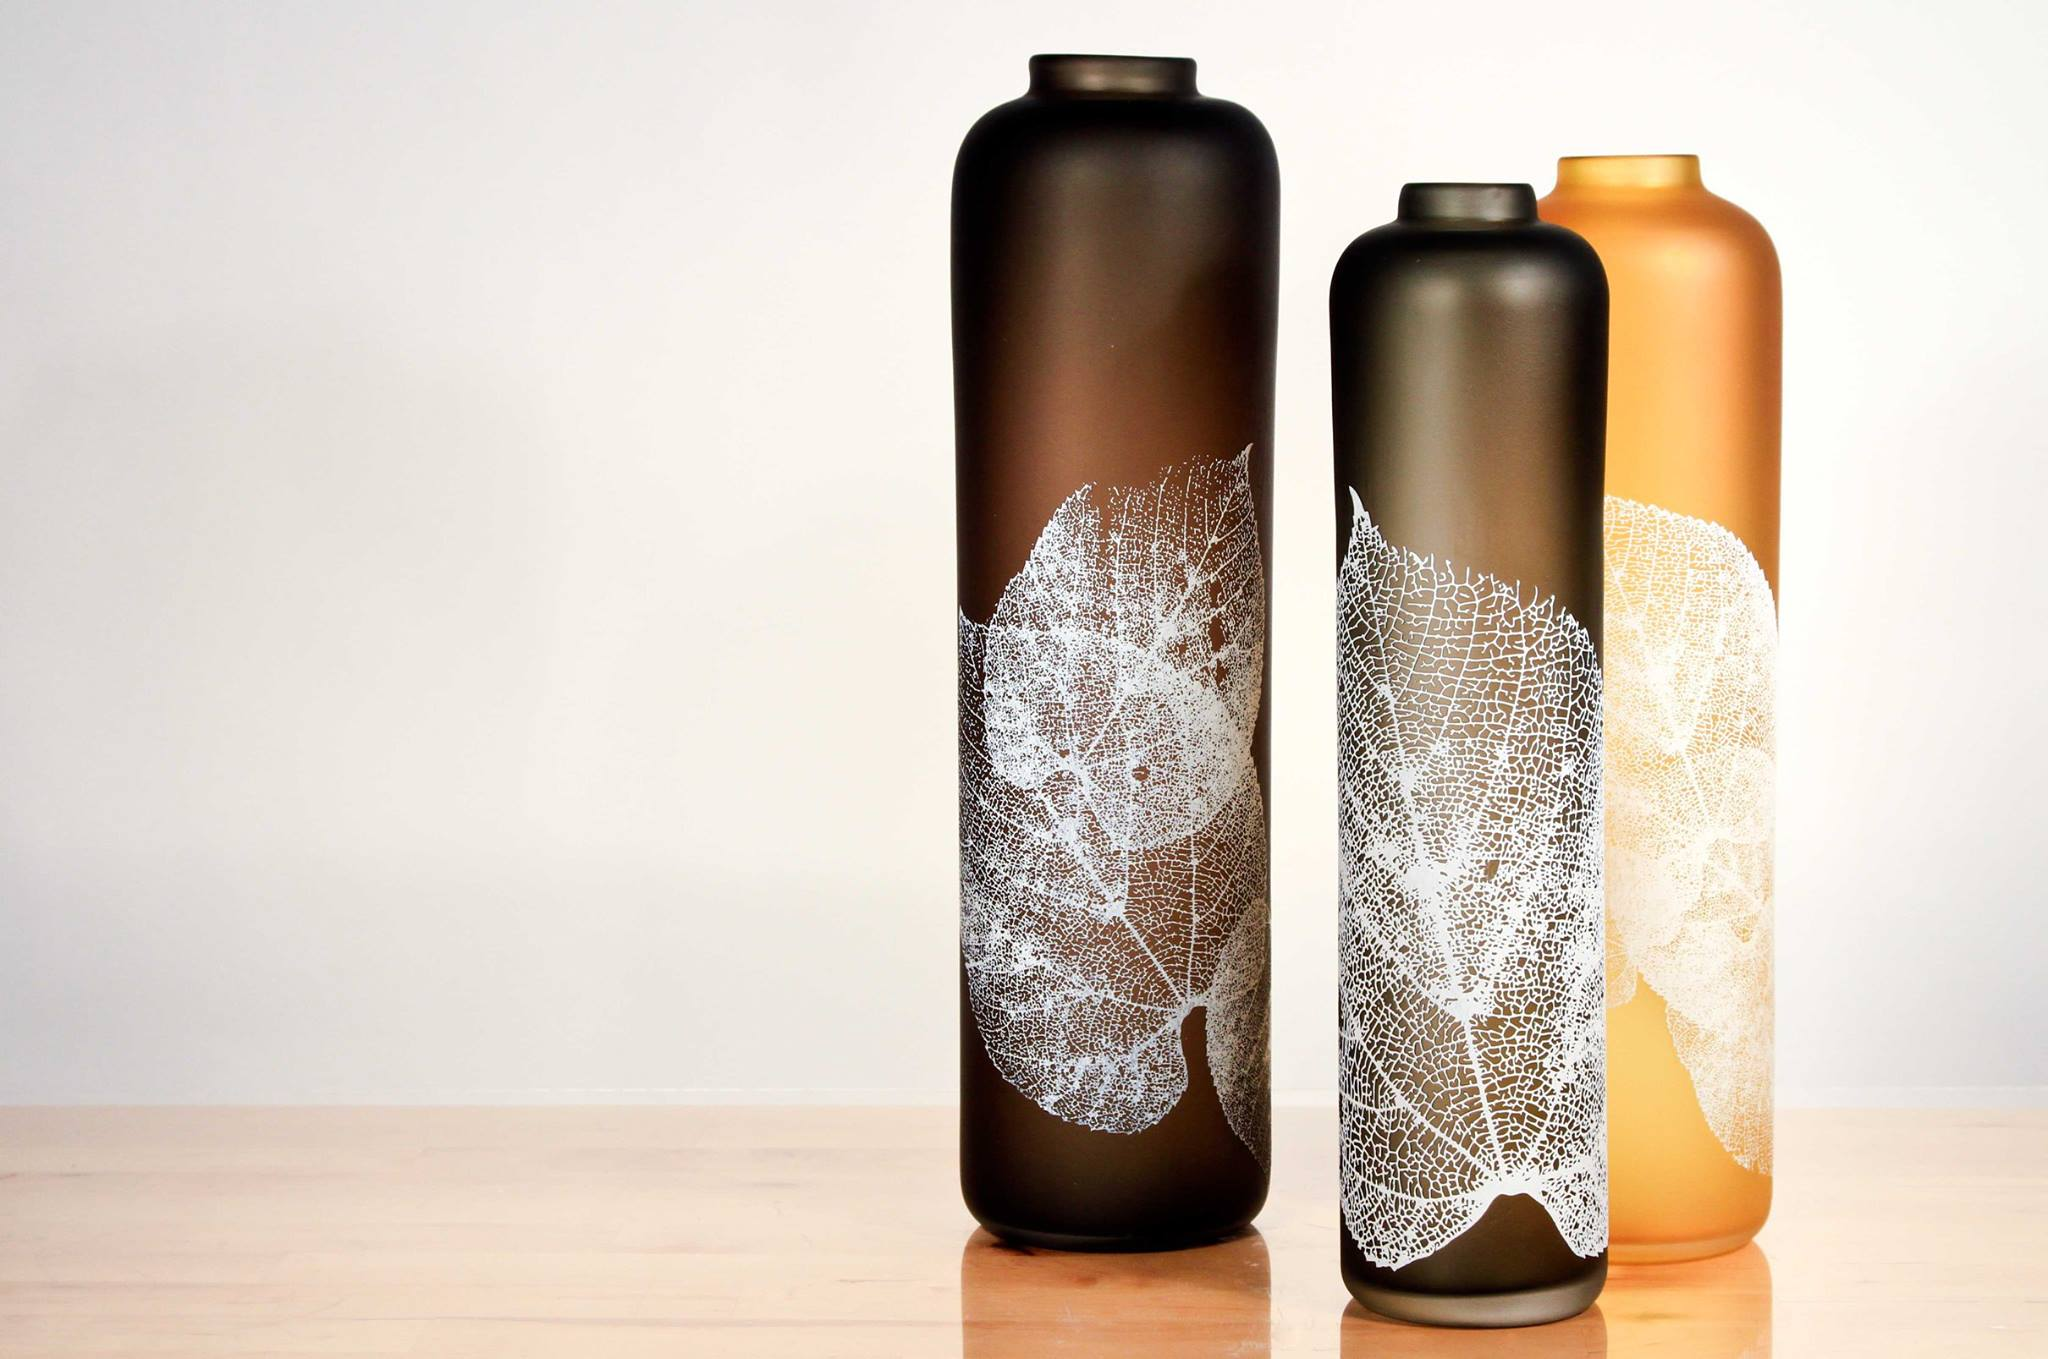 Glass vessels with sandblasted leaf detail by Nick Chase